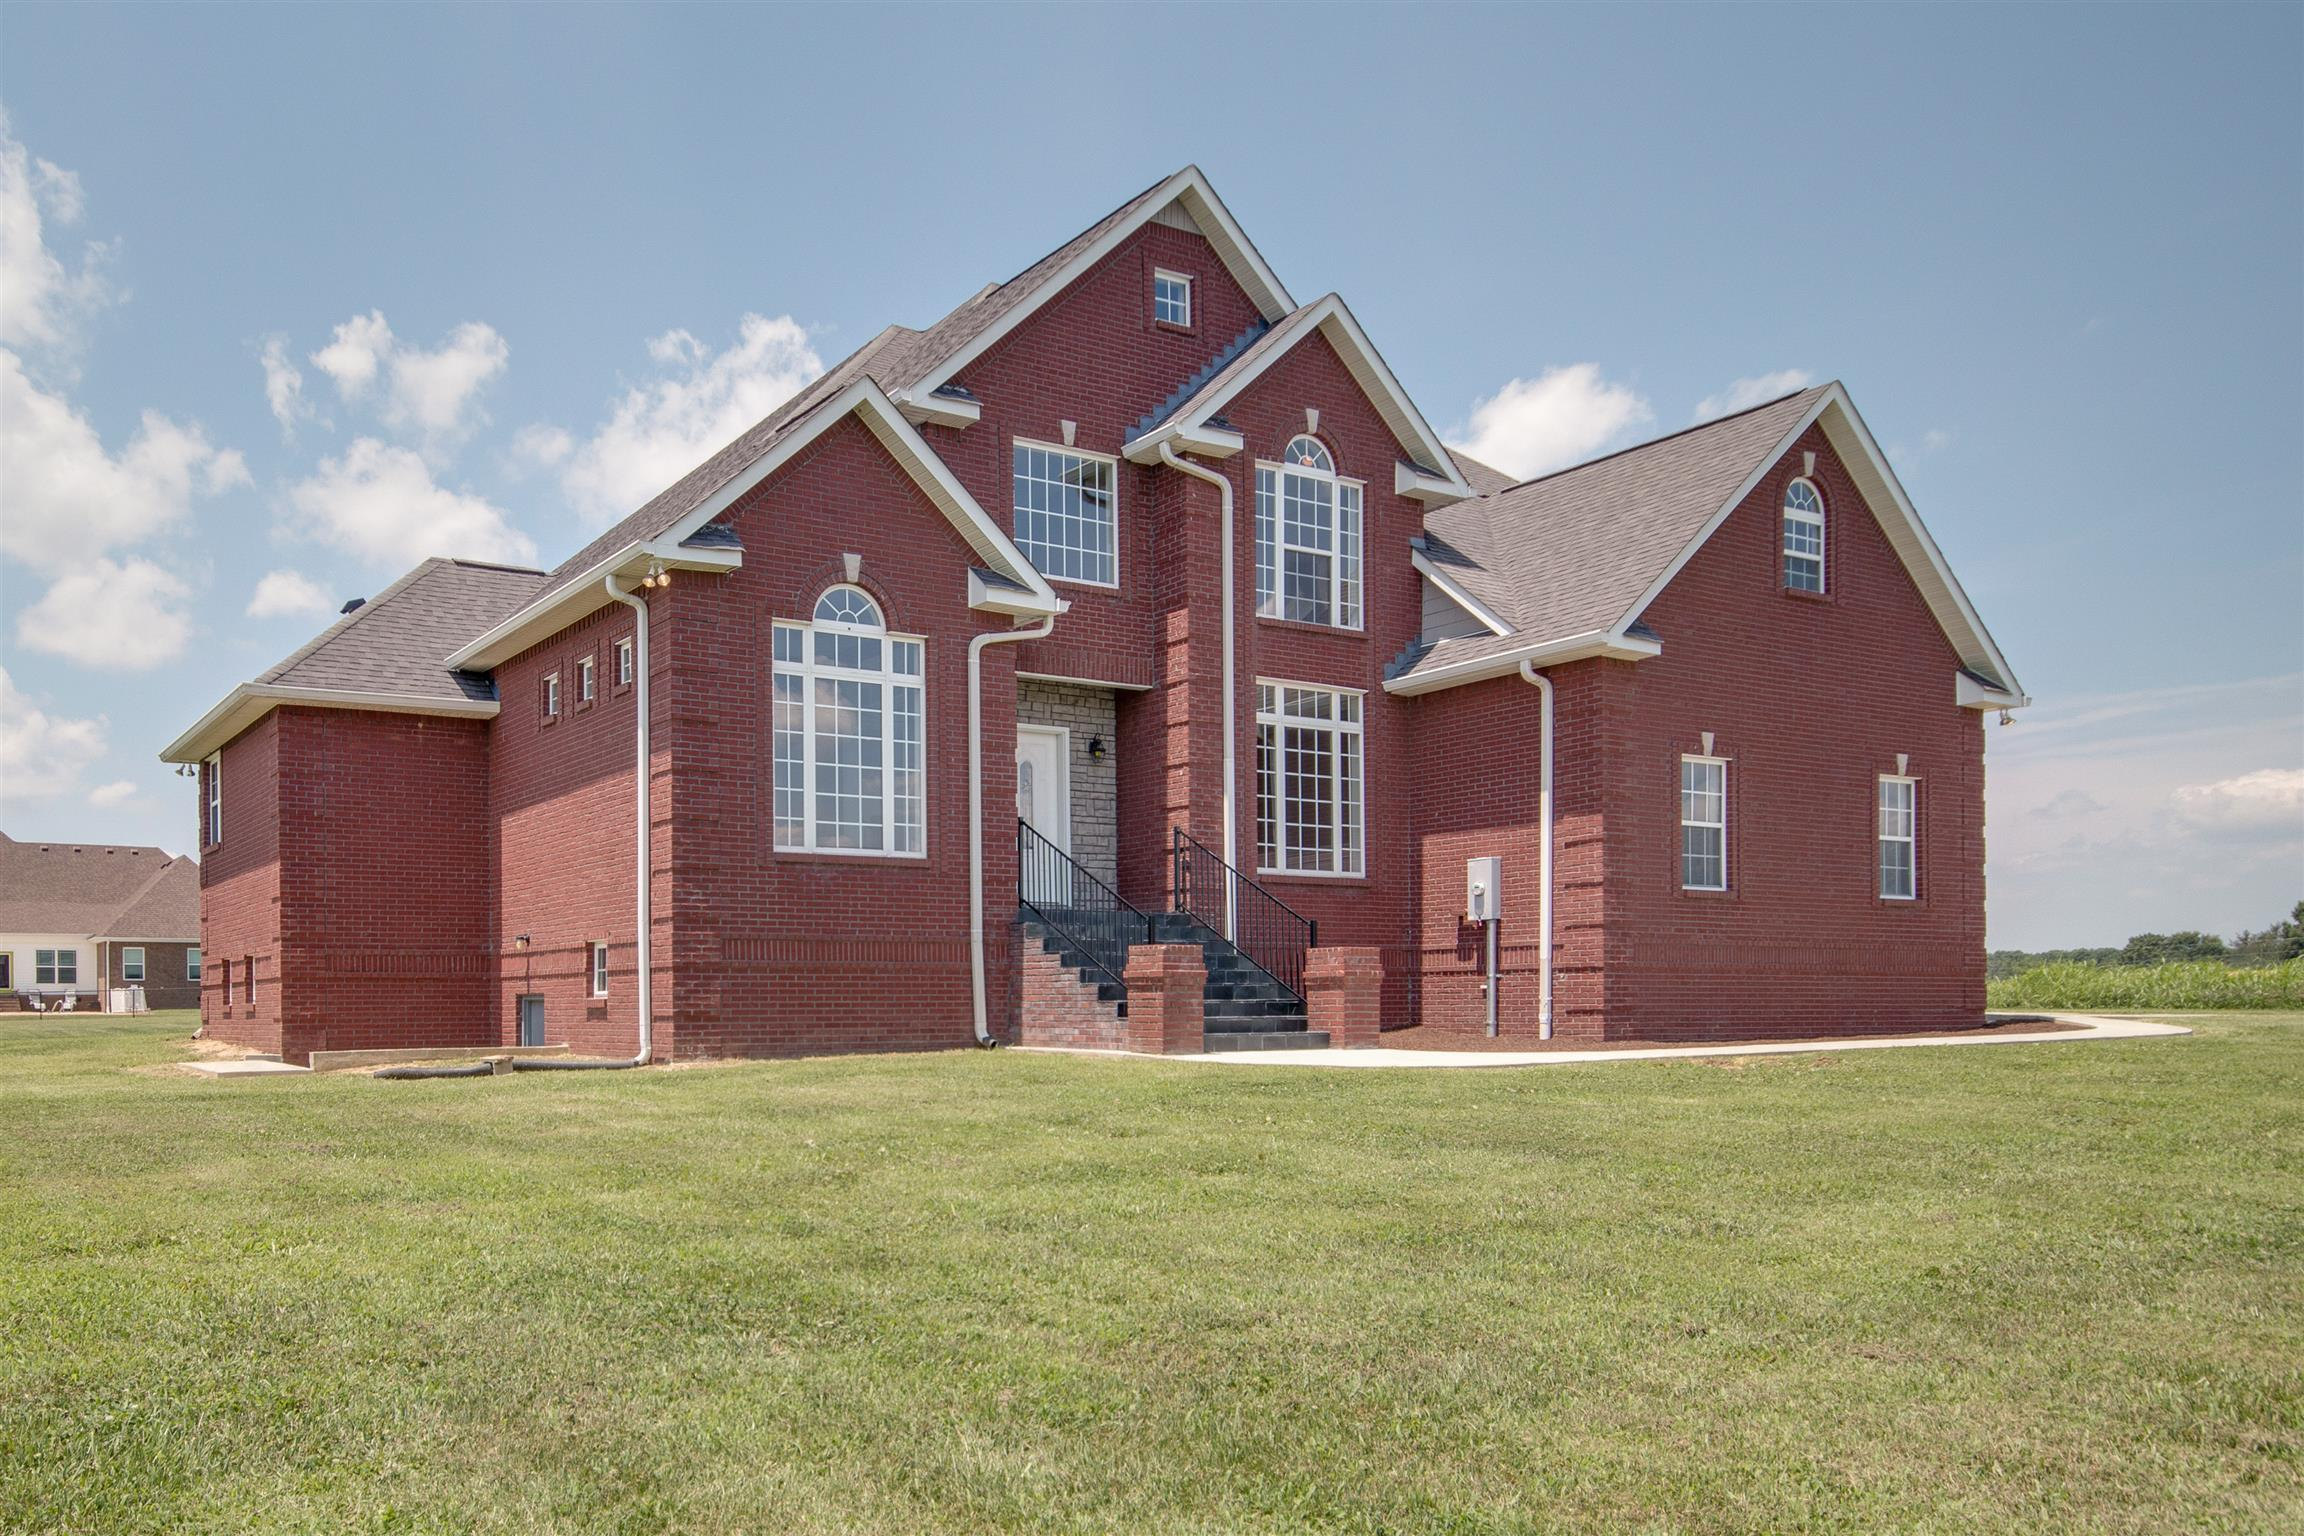 177 Richland Hills Dr, Manchester, Tennessee